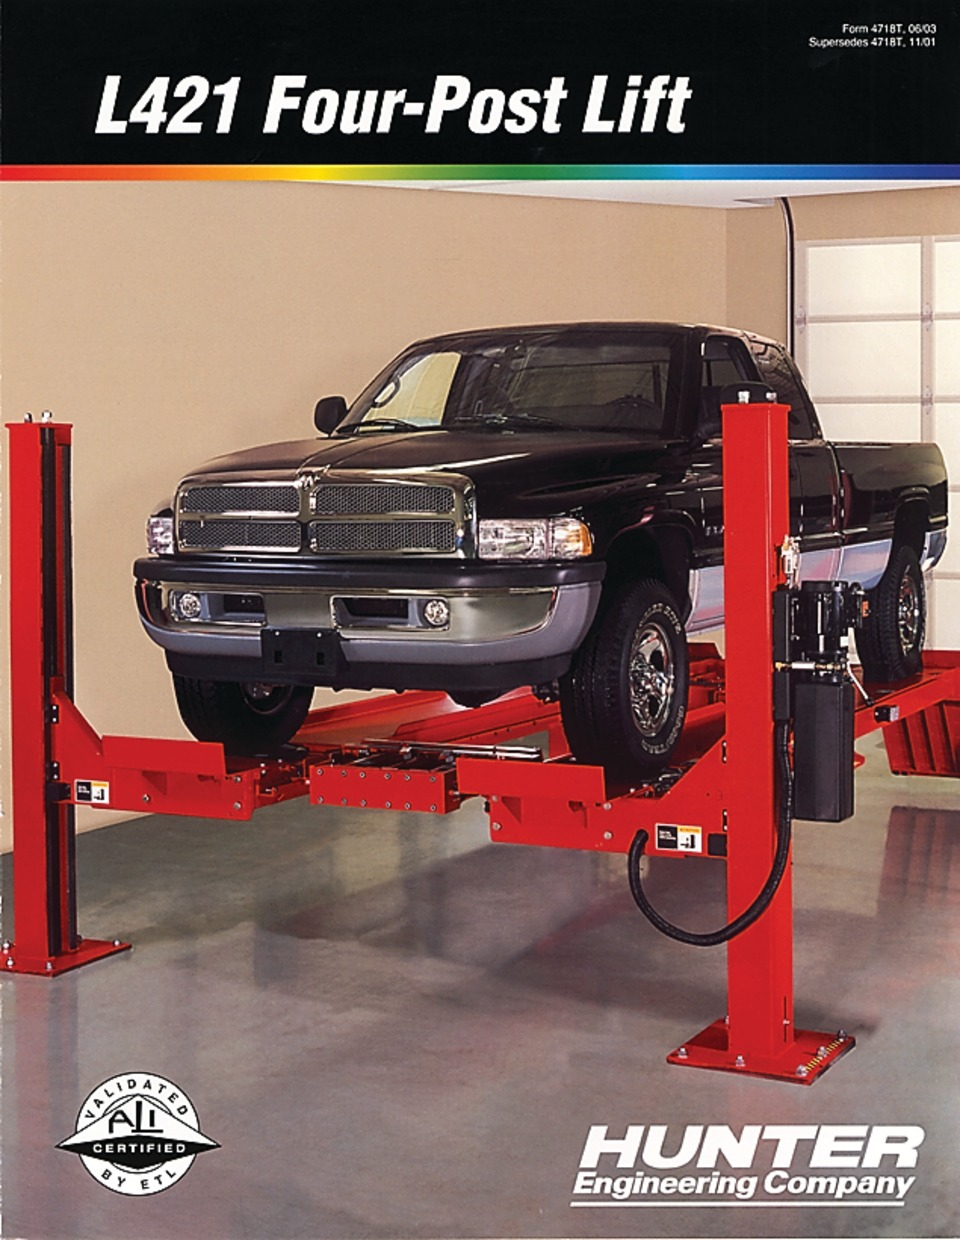 Hunter Alignment Rack >> Hunter Engineering Company L421 Alignment Lift Brochure In Training